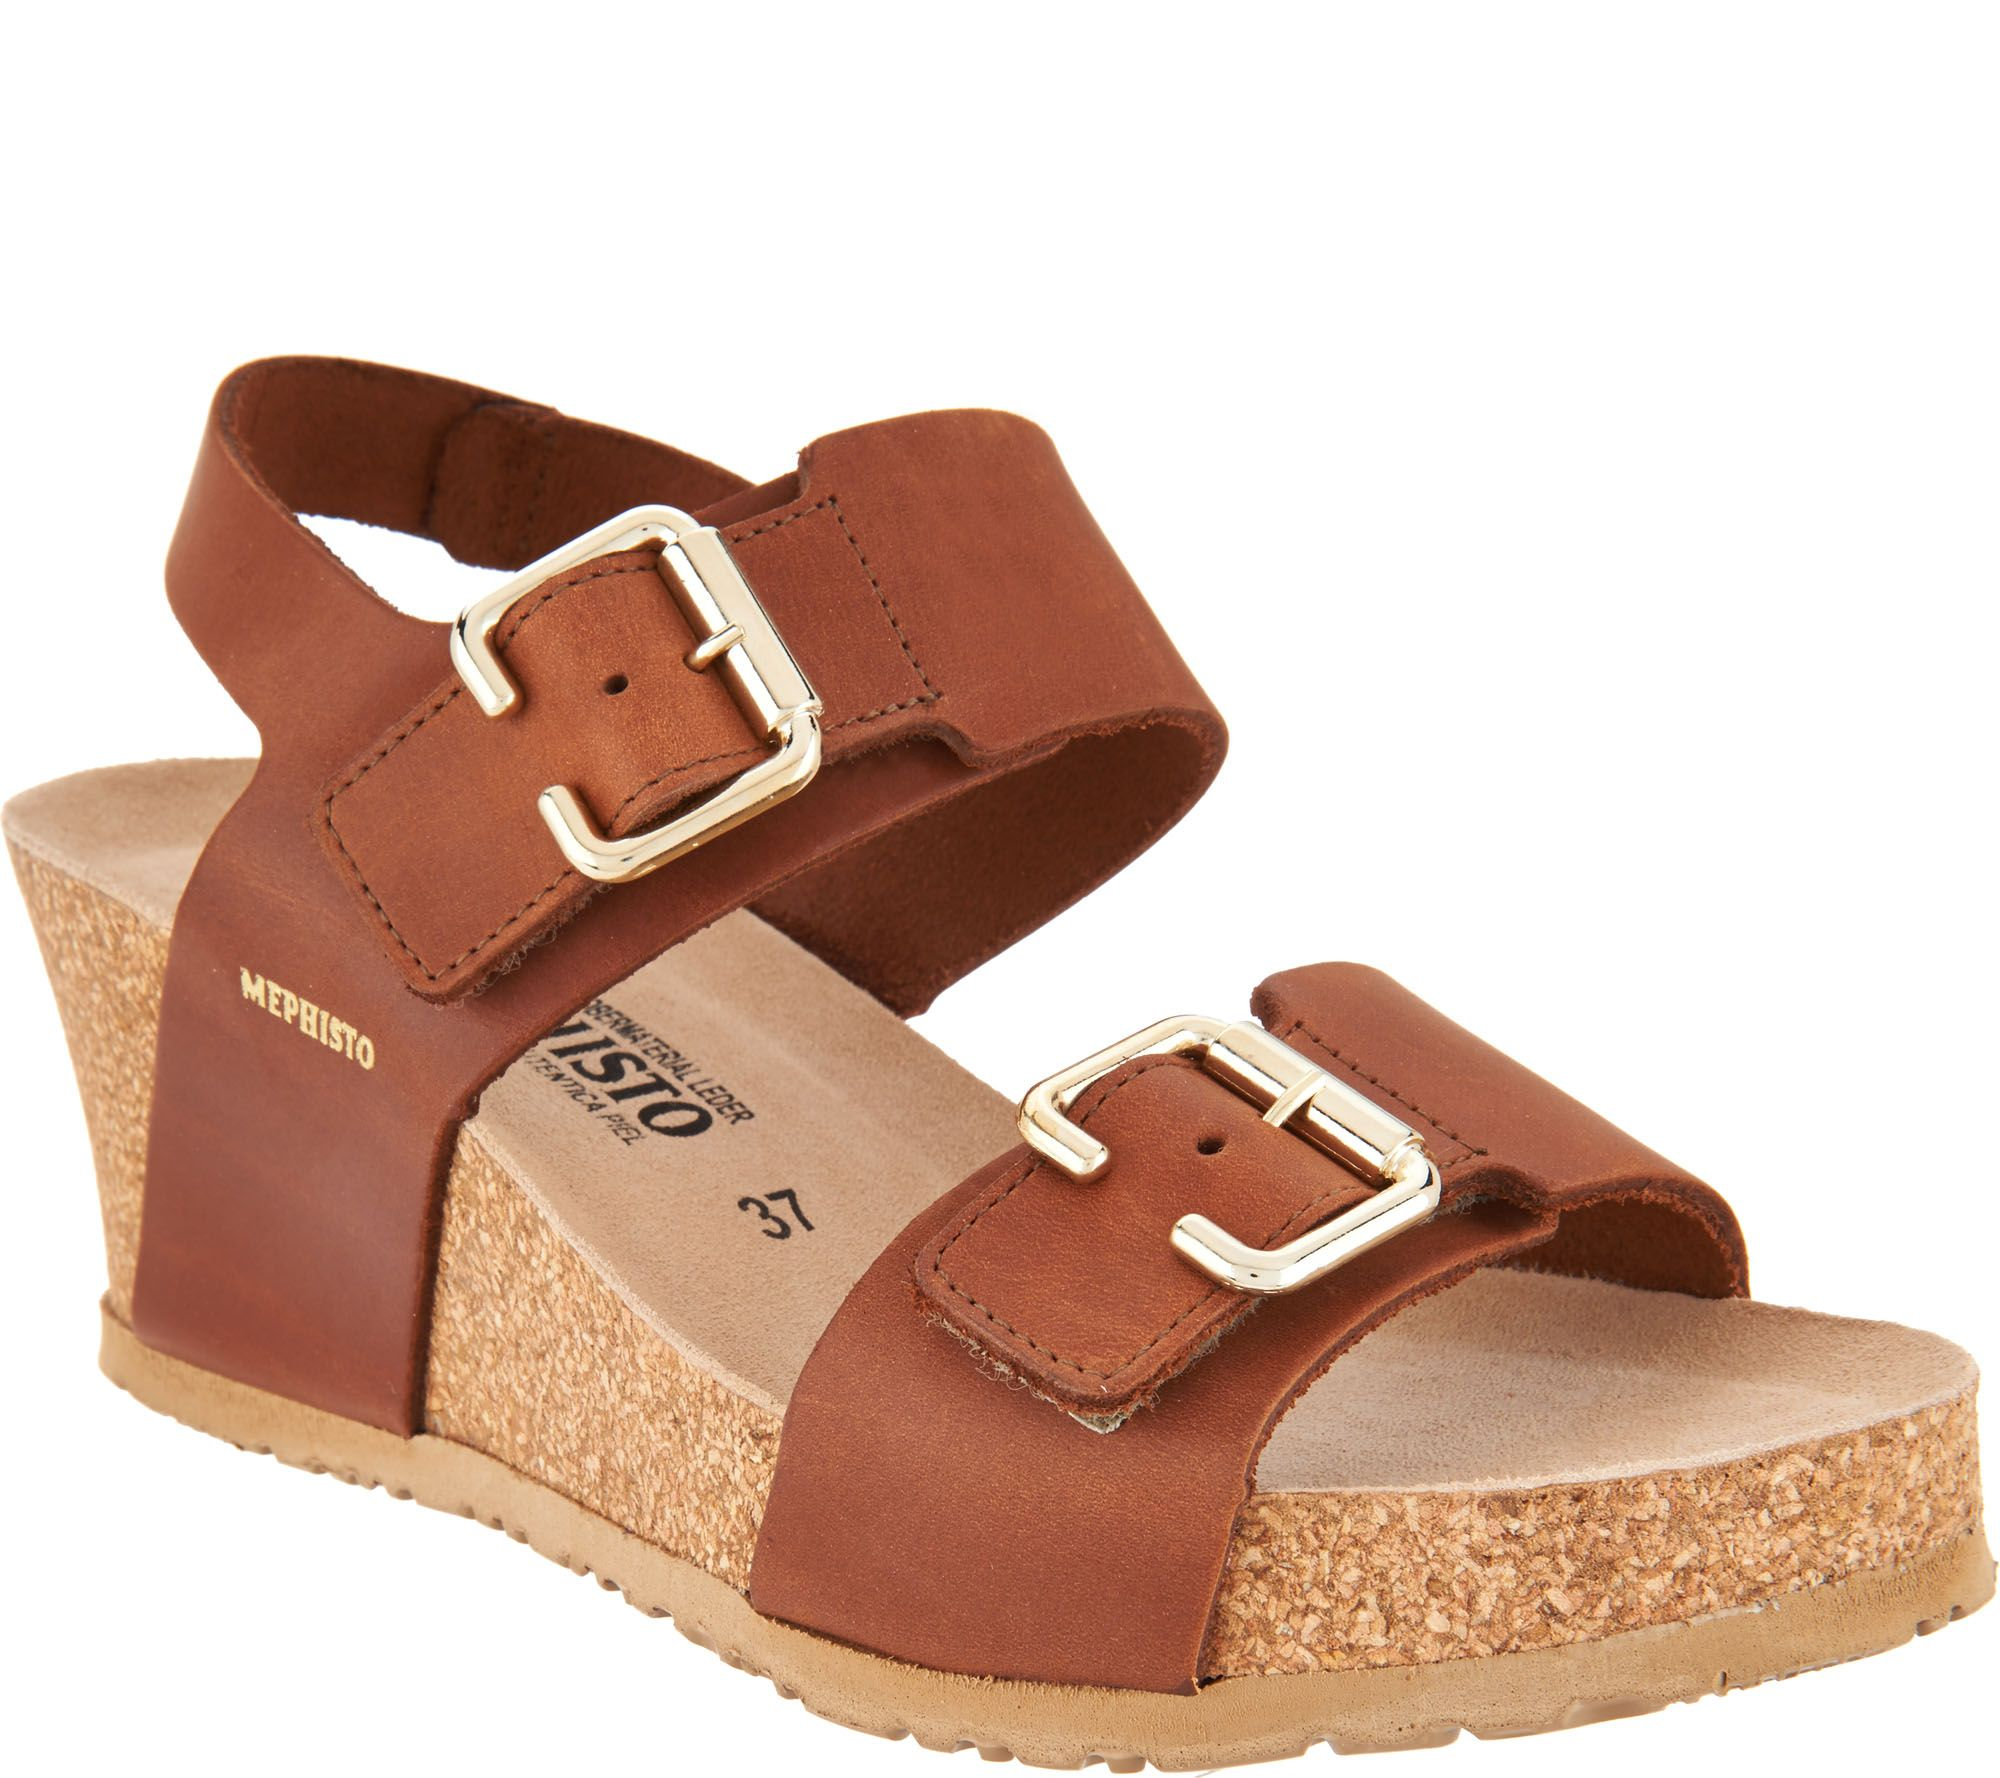 fast delivery cheap online free shipping best sale MEPHISTO Leather Double Strap Wedges - Lissandra cheap price from china v5fZXXoFu